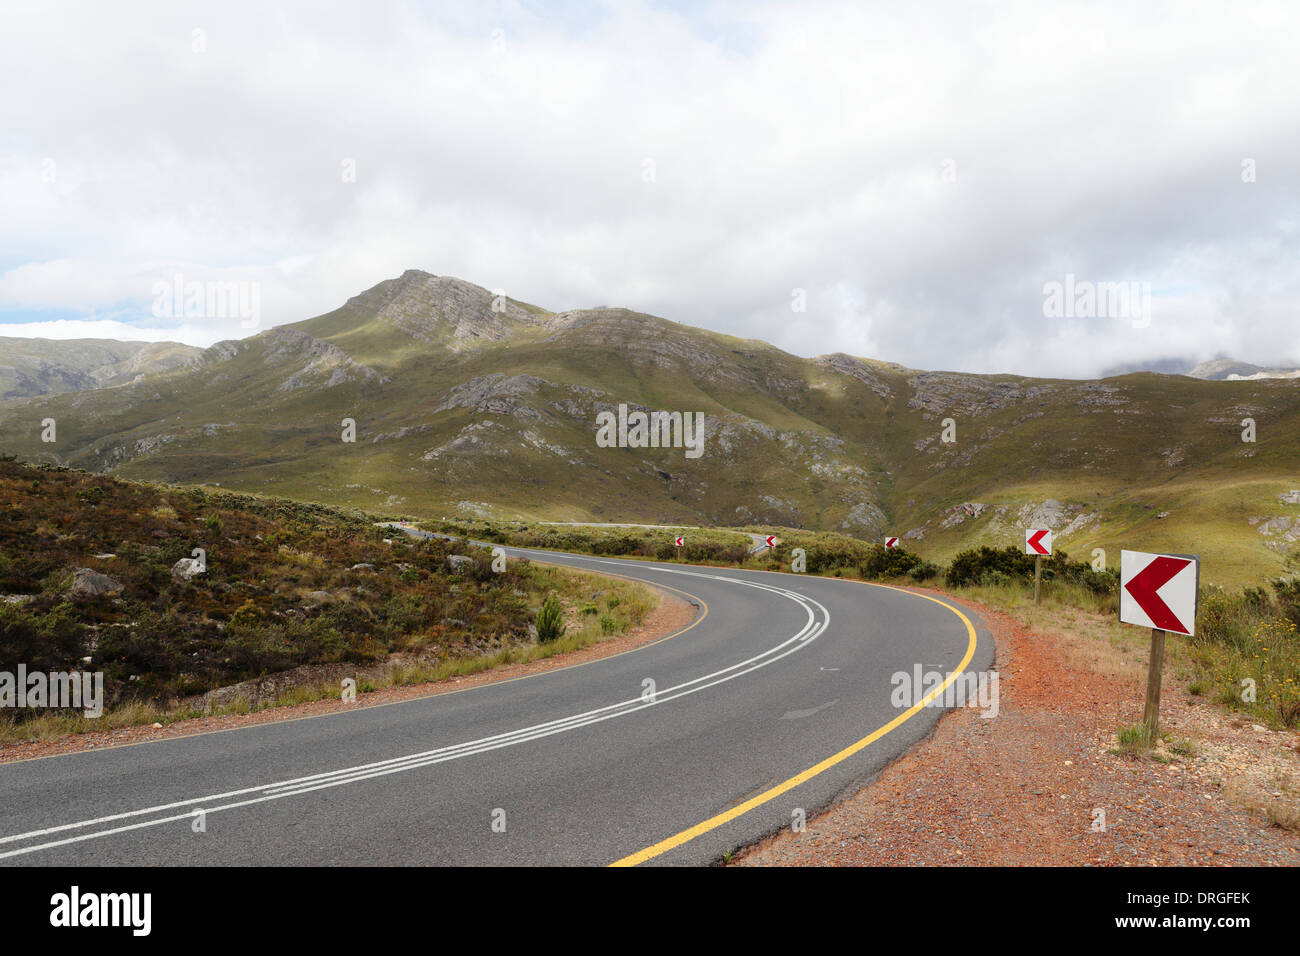 Winding mountain pass on the R45 highway between Franschoek and Villiersdorp - Stock Image